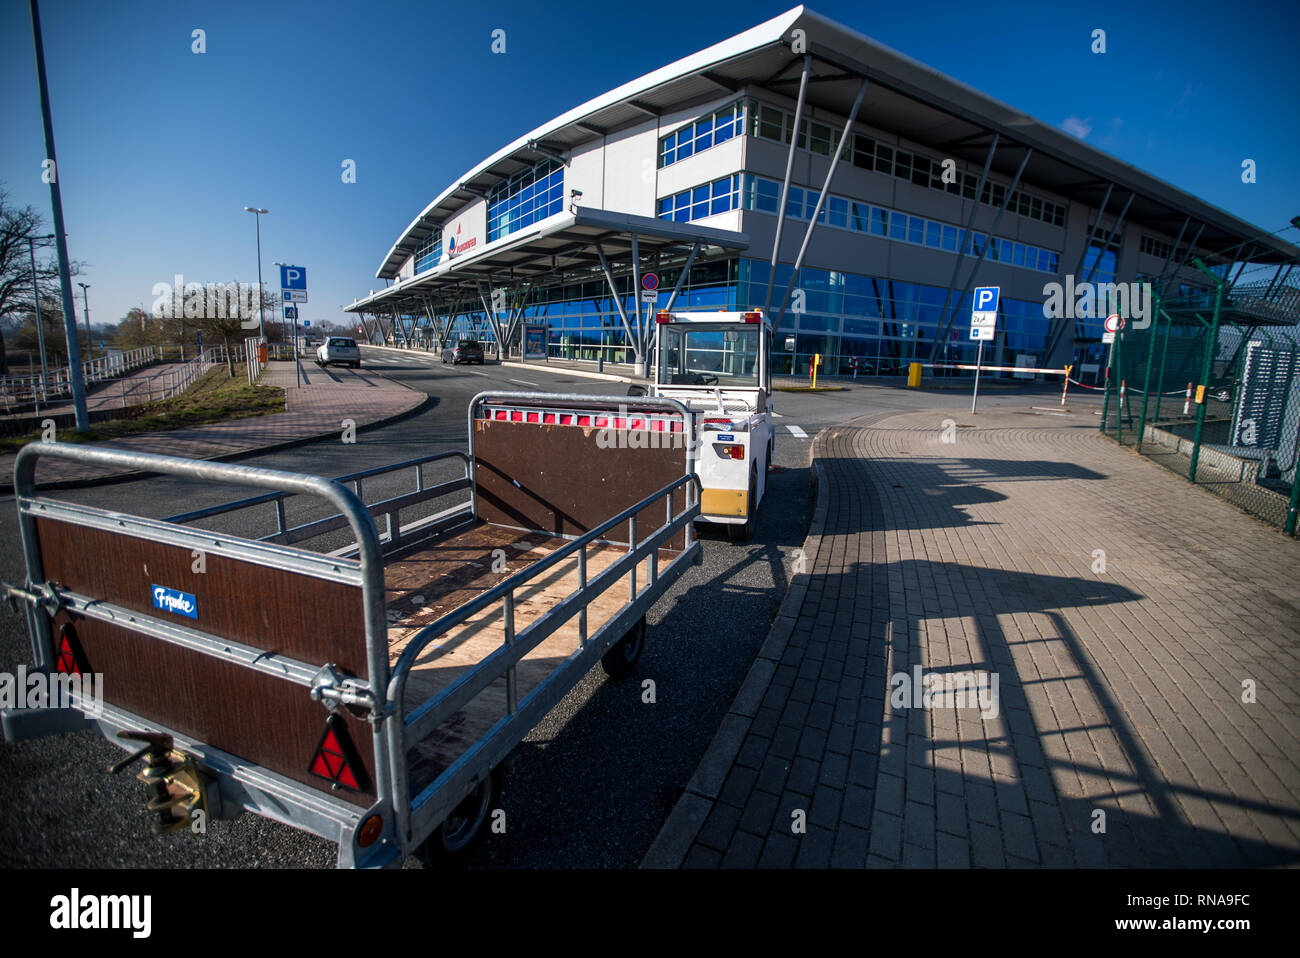 Laage, Germany. 18th Feb, 2019. A transport trailer for suitcases stands in front of the departure hall of Rostock-Laage Airport. Following the insolvency of the British regional airline Flybmi and the holiday airline Germania, the airport's shareholders are discussing the economic situation. For the airport Rostock-Laage the Flybmi flights to Munich were the last regular connections. Credit: Jens Büttner/dpa-Zentralbild/dpa/Alamy Live News - Stock Image